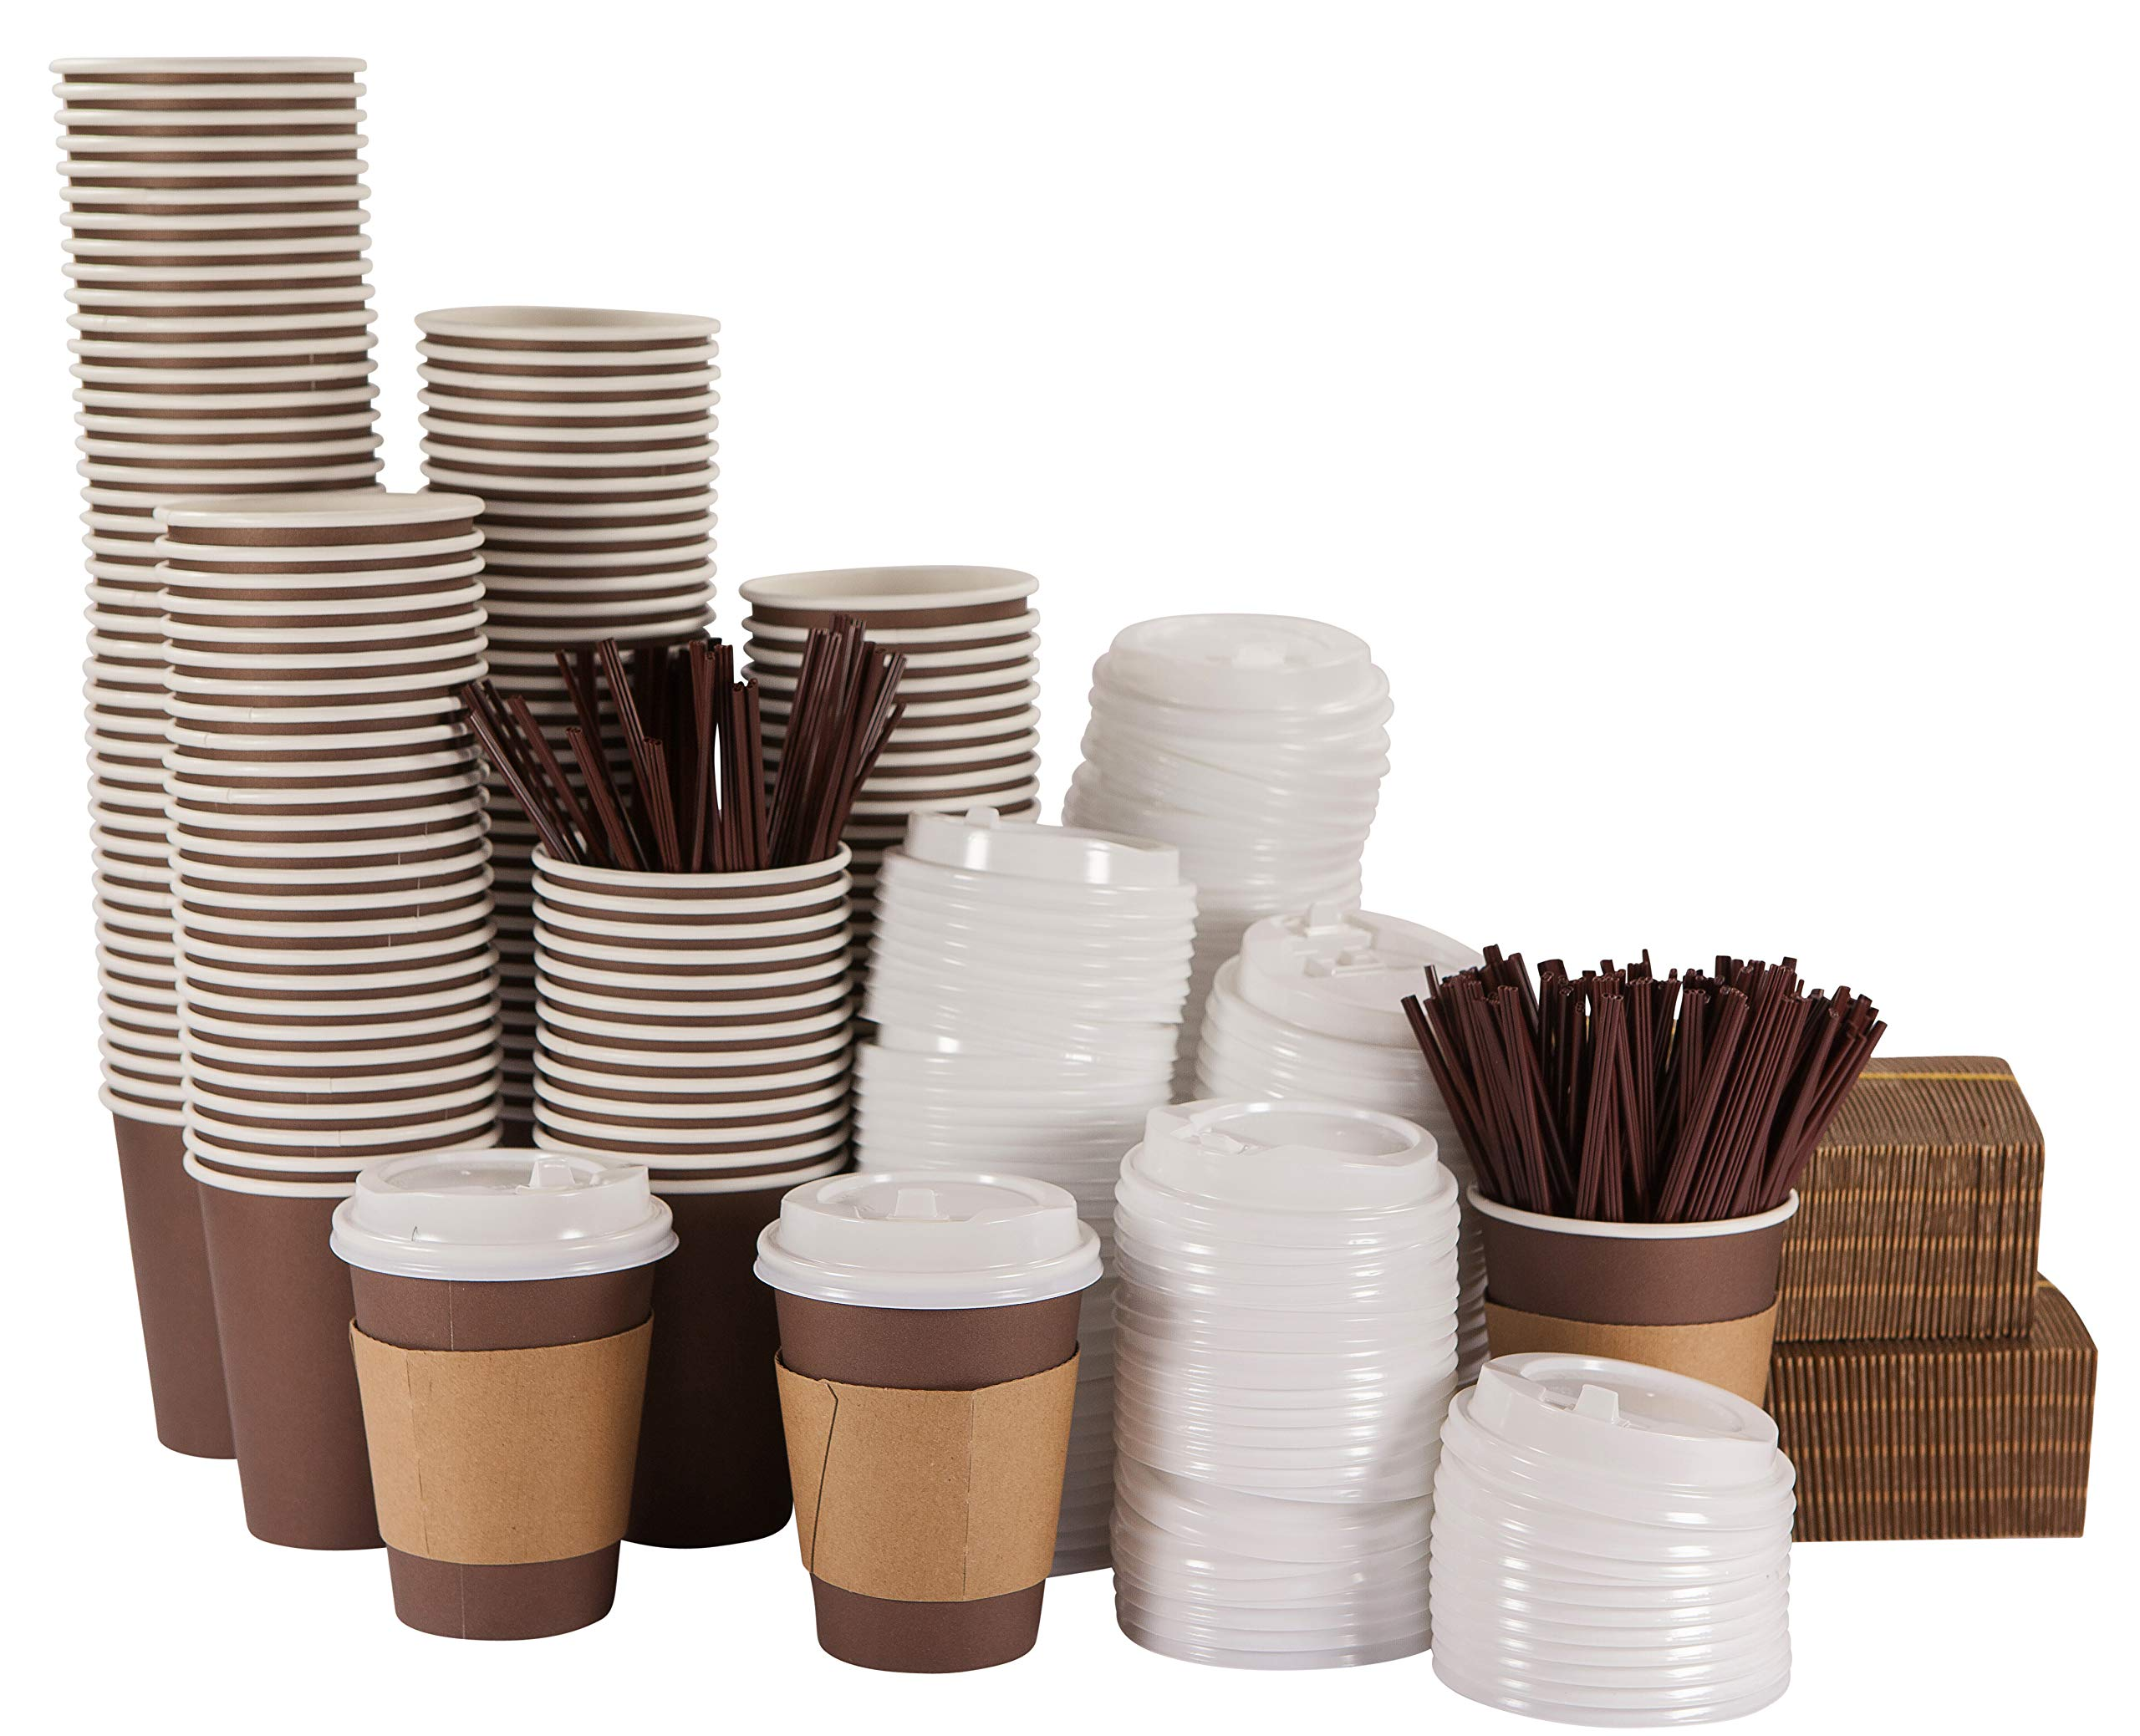 bilubah 140 Pack - 12 Oz Disposable Hot Paper Coffee Cups with Lids, Sleeves and Stirring Straws - Complete Supply for Offices, Restaurants, Coffee Shops, Parties, Home and All the People on the Go